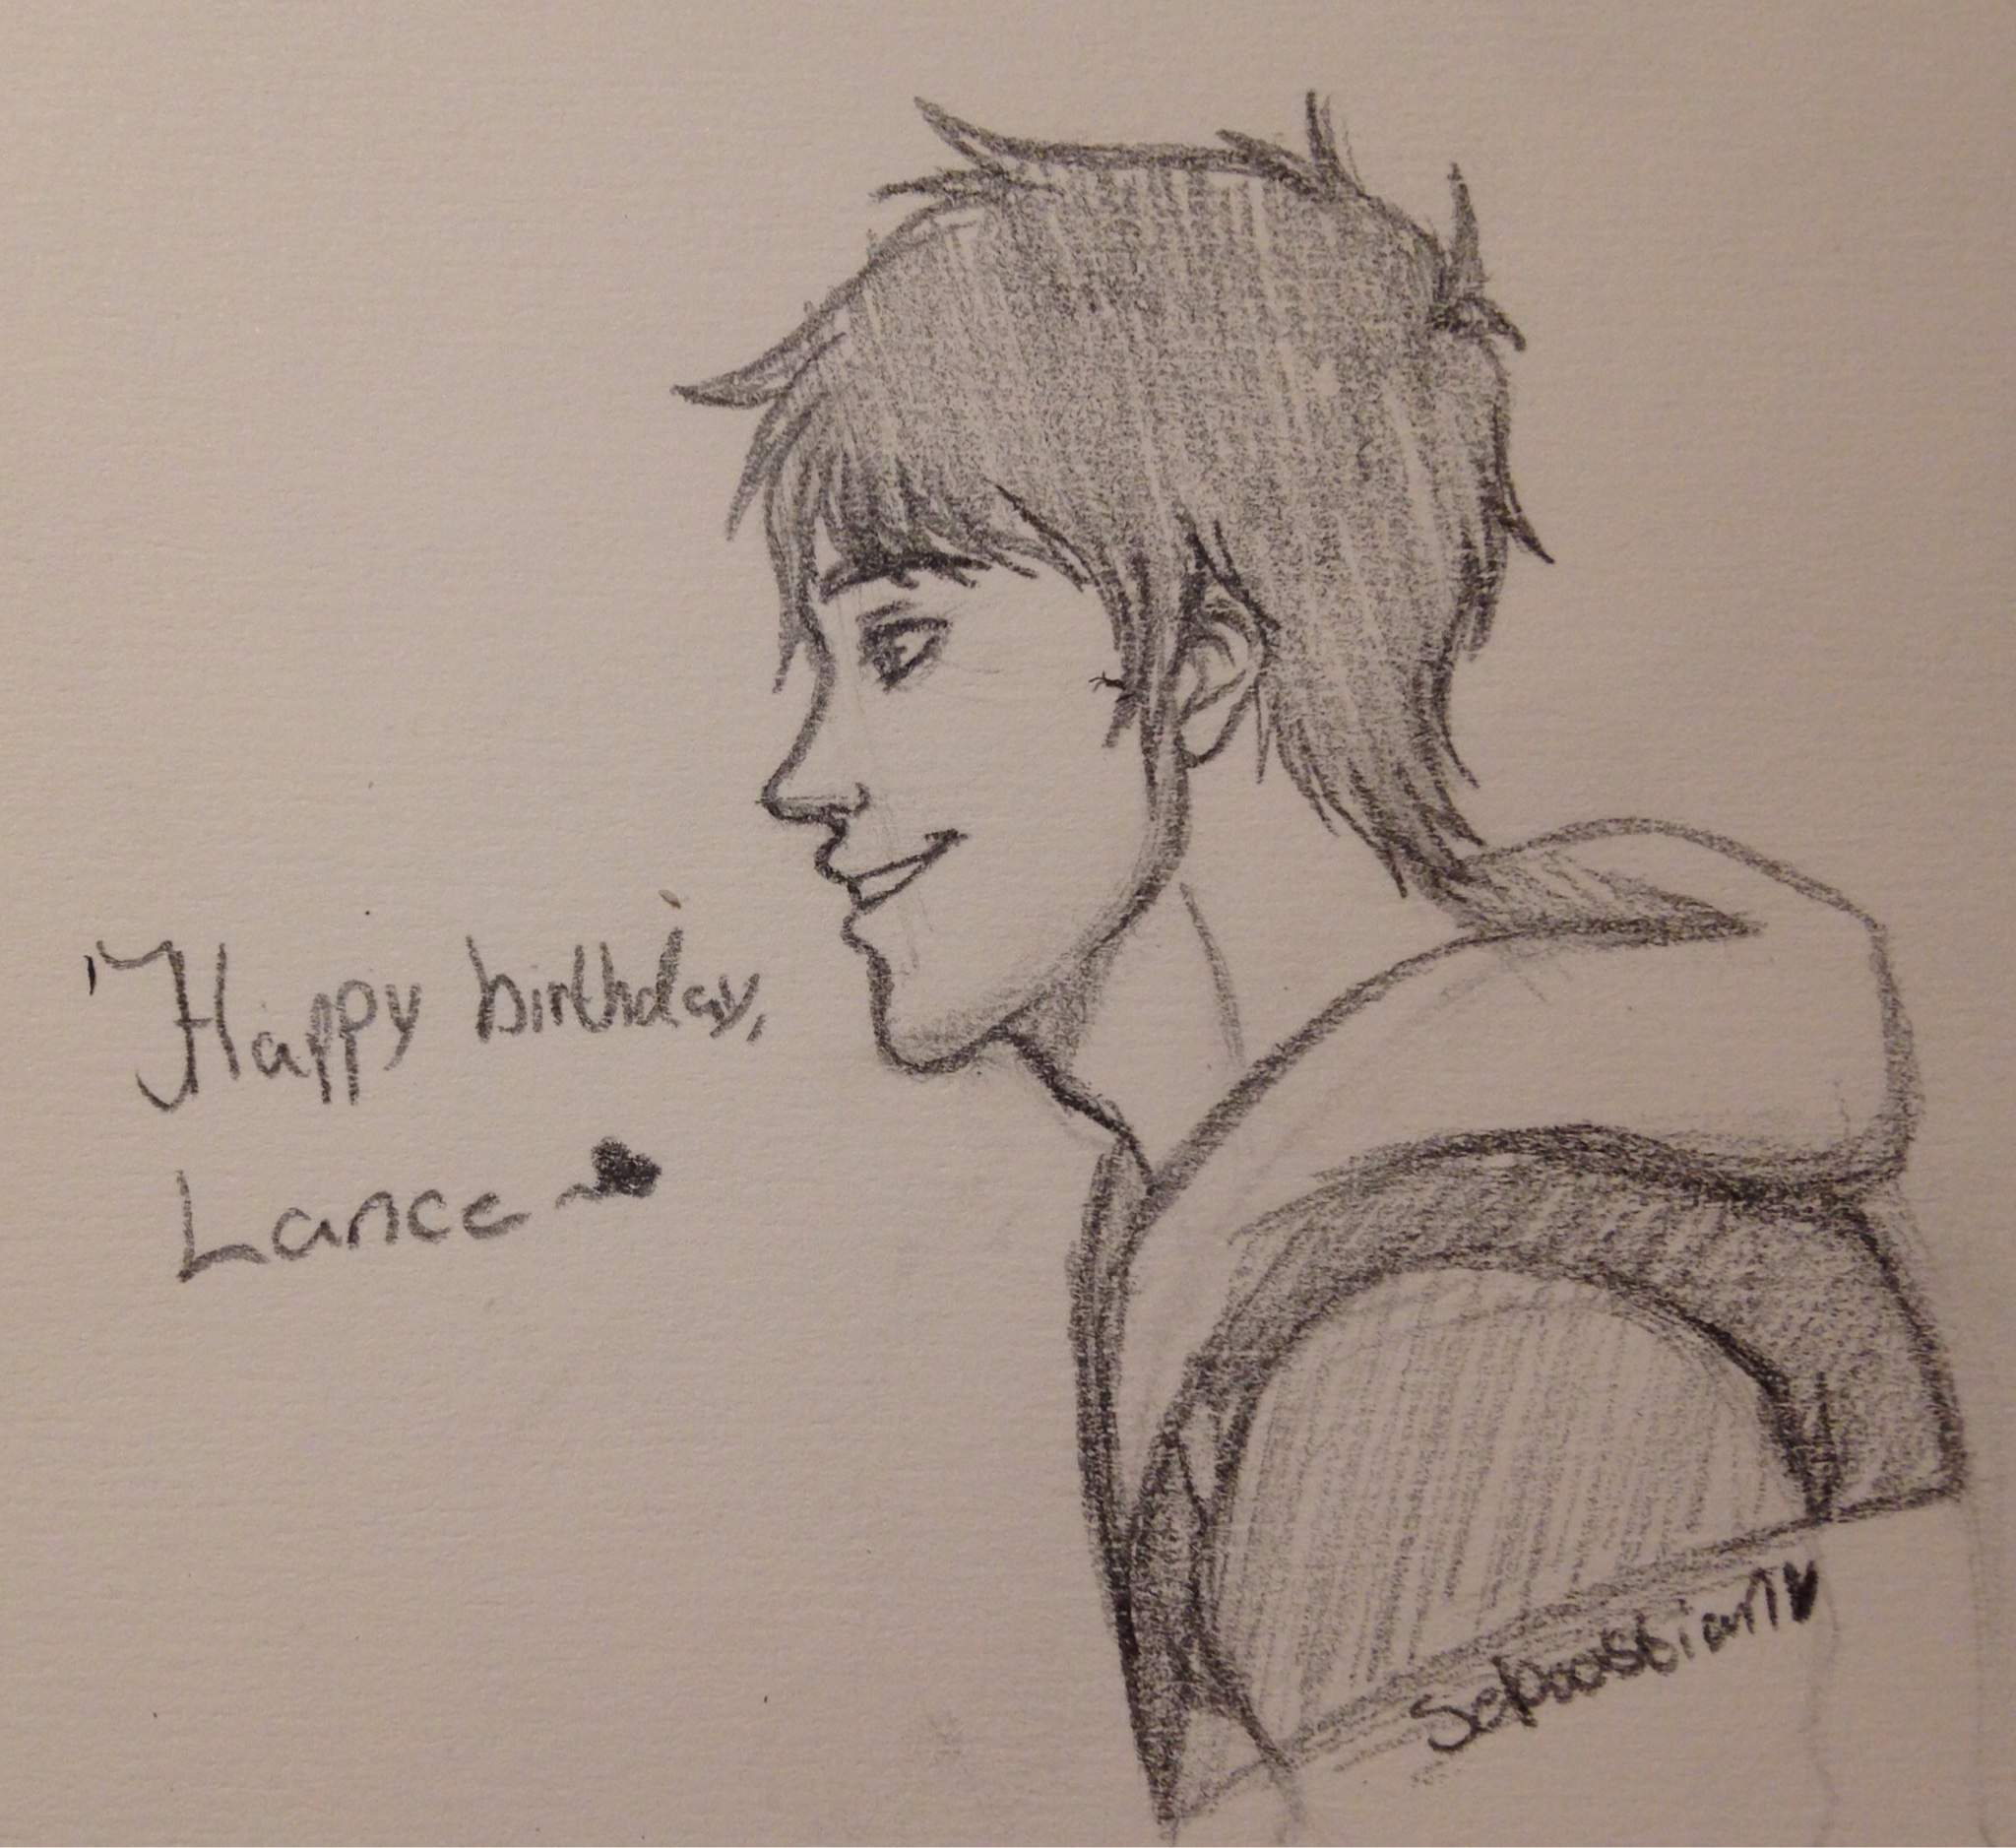 Happy birthday lance pencil sketch